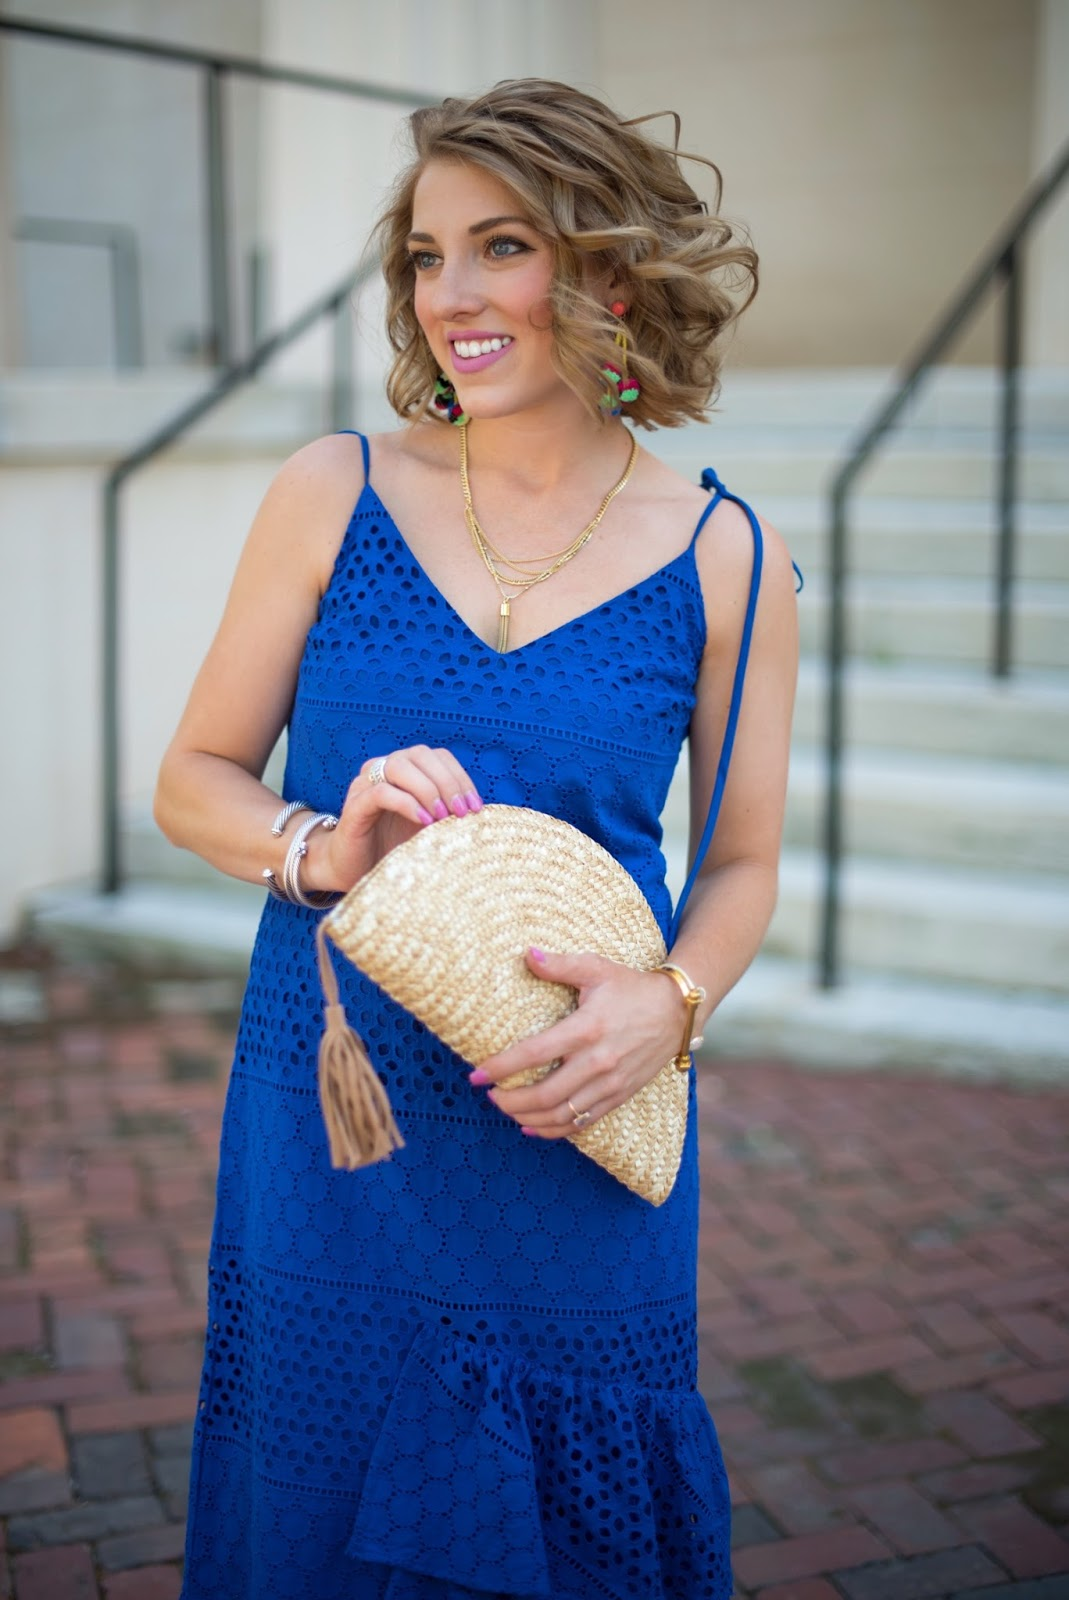 The perfect straw clutch - Click through to see more on Something Delightful Blog